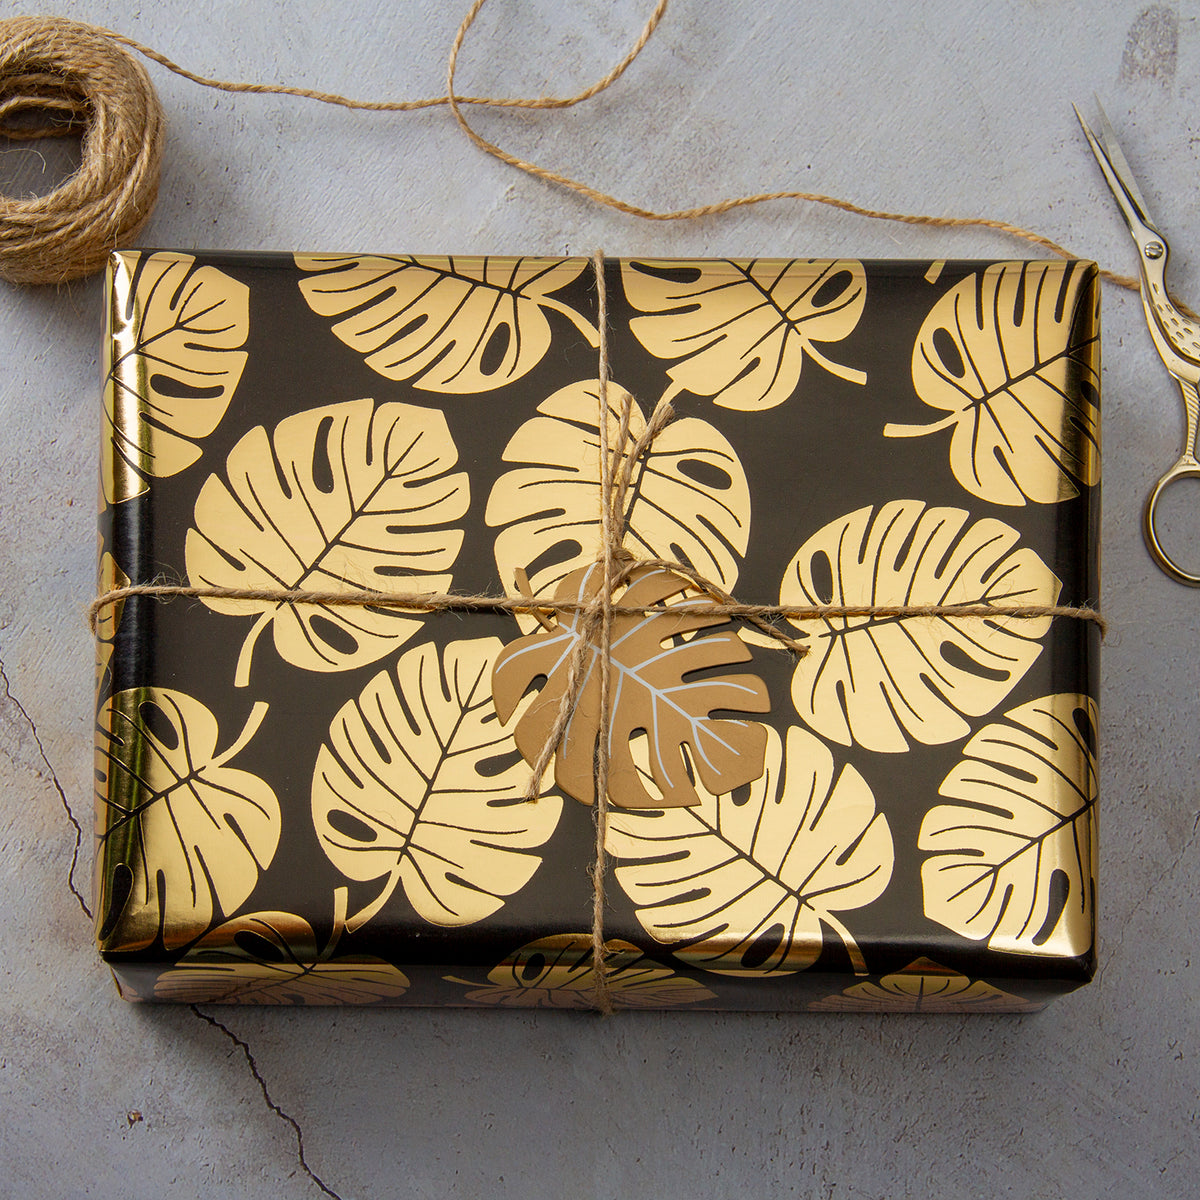 Wrapaholic- Black-and- Gold-Foil- Tropical-Palm- Leaves-Gift- Wrapping- Paper-Roll-4